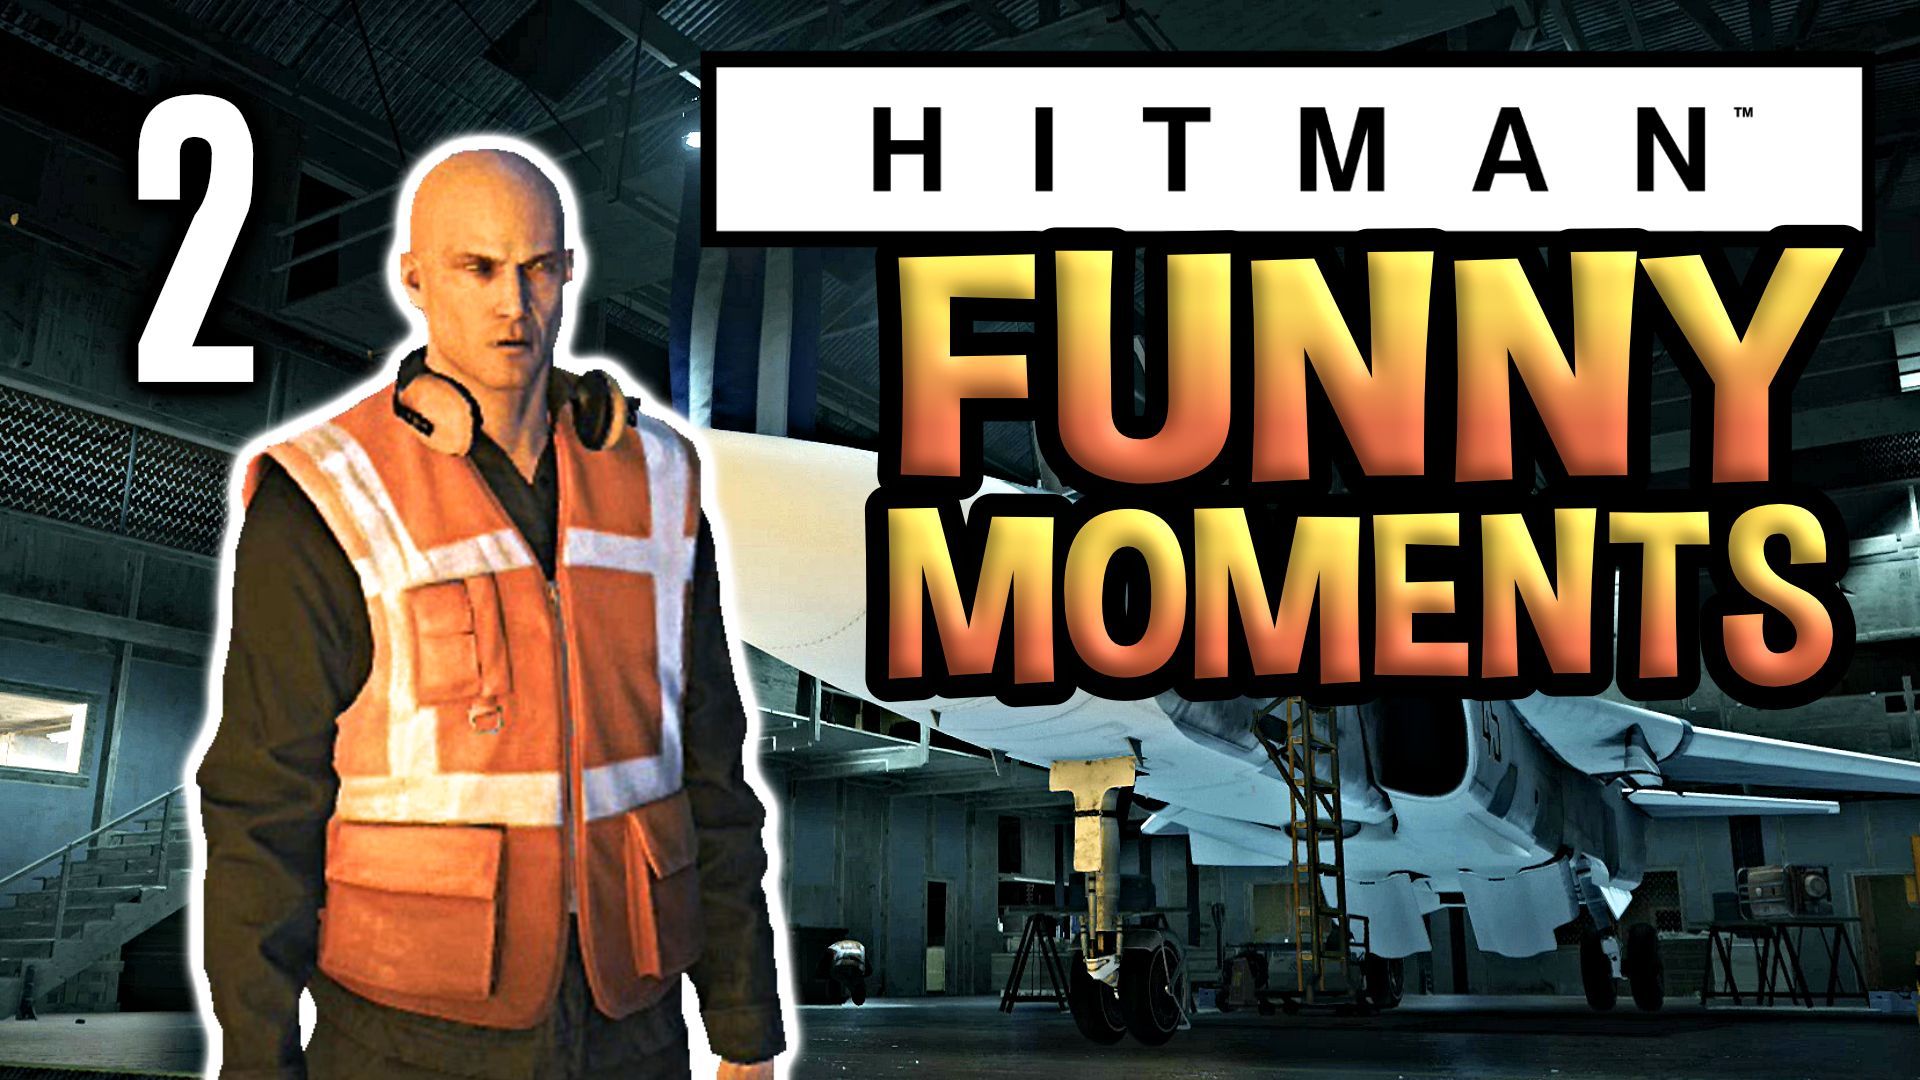 More Hitman Funny Moments All I M Gunna Say Is This There S A Jet And I Did Something Pretty Crazy With It Funny Moments Funny In This Moment